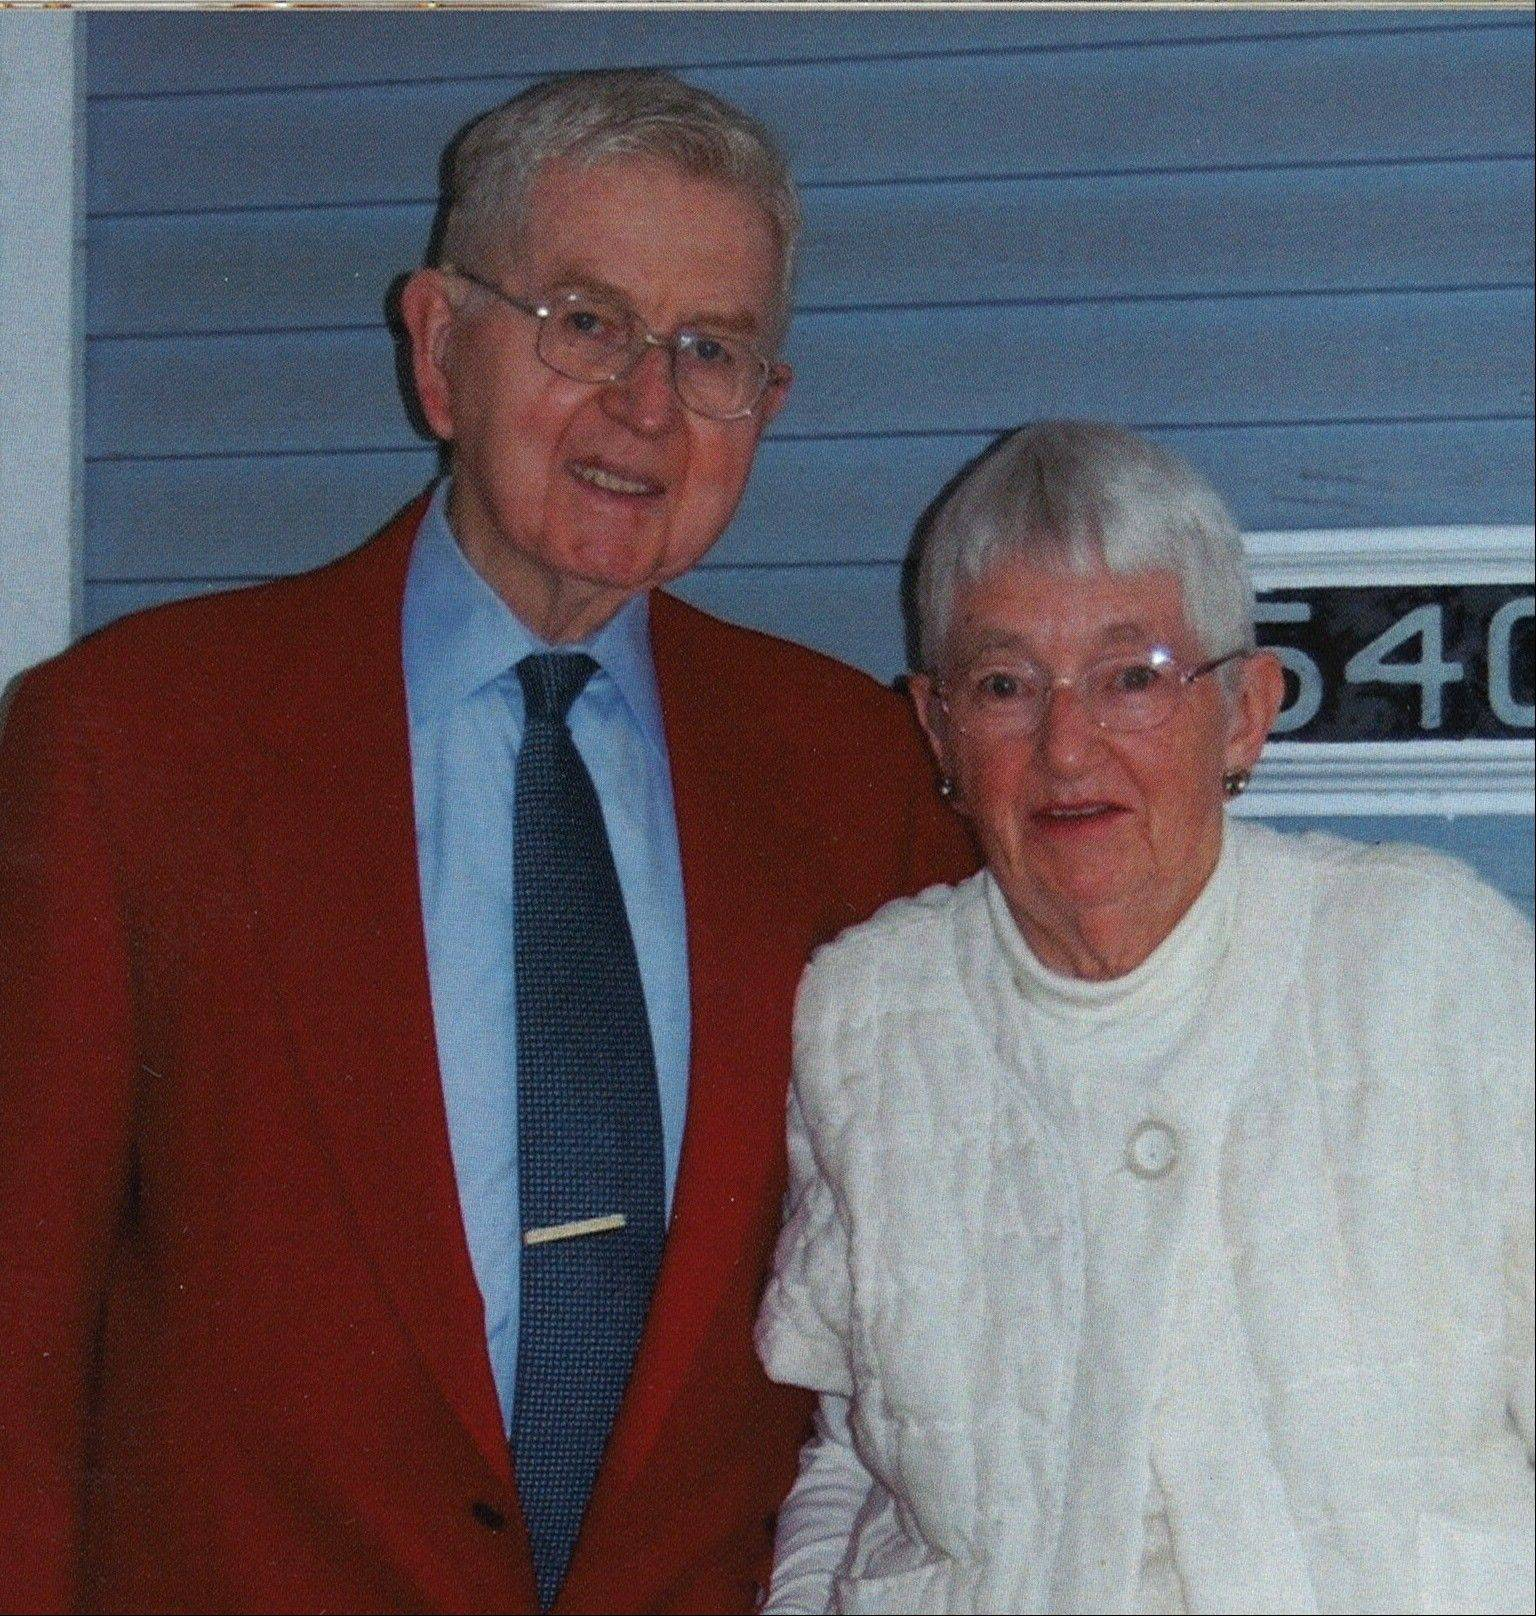 Bill and Dyllis Braithwaite